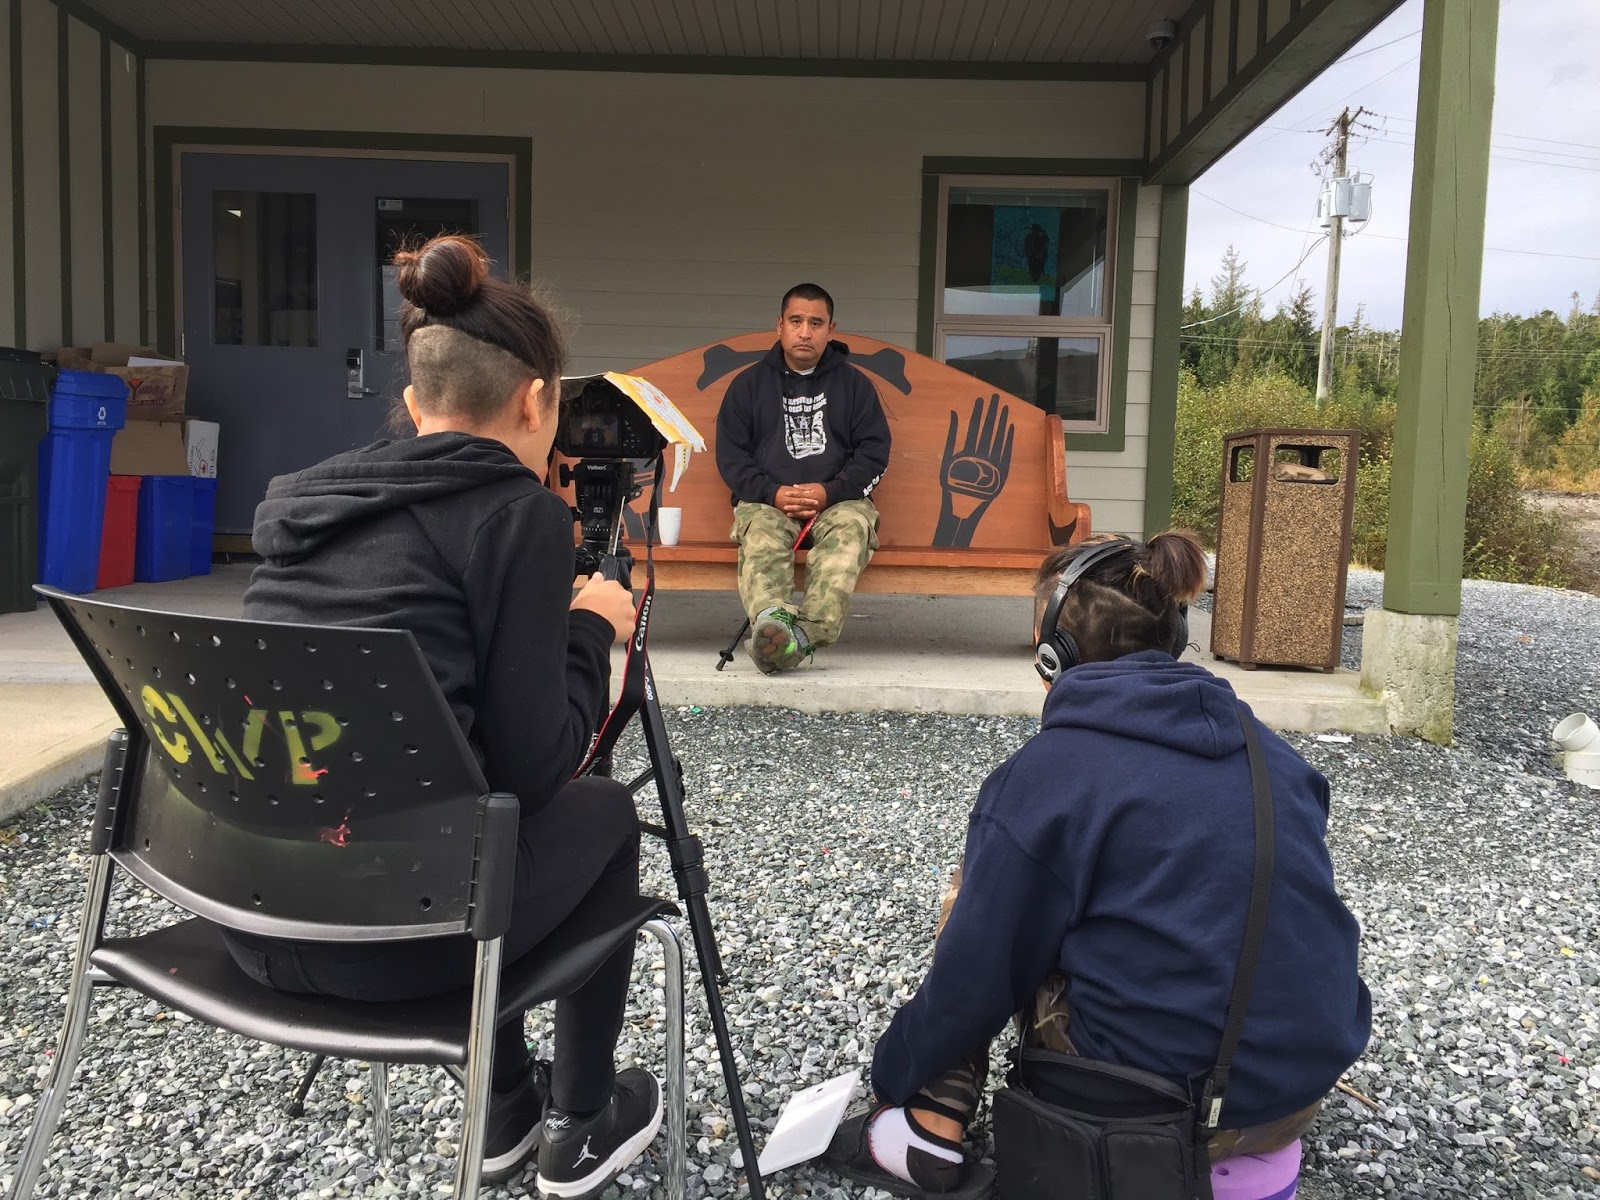 Elle and Latoya interview Russel about the affects of Residential Schools